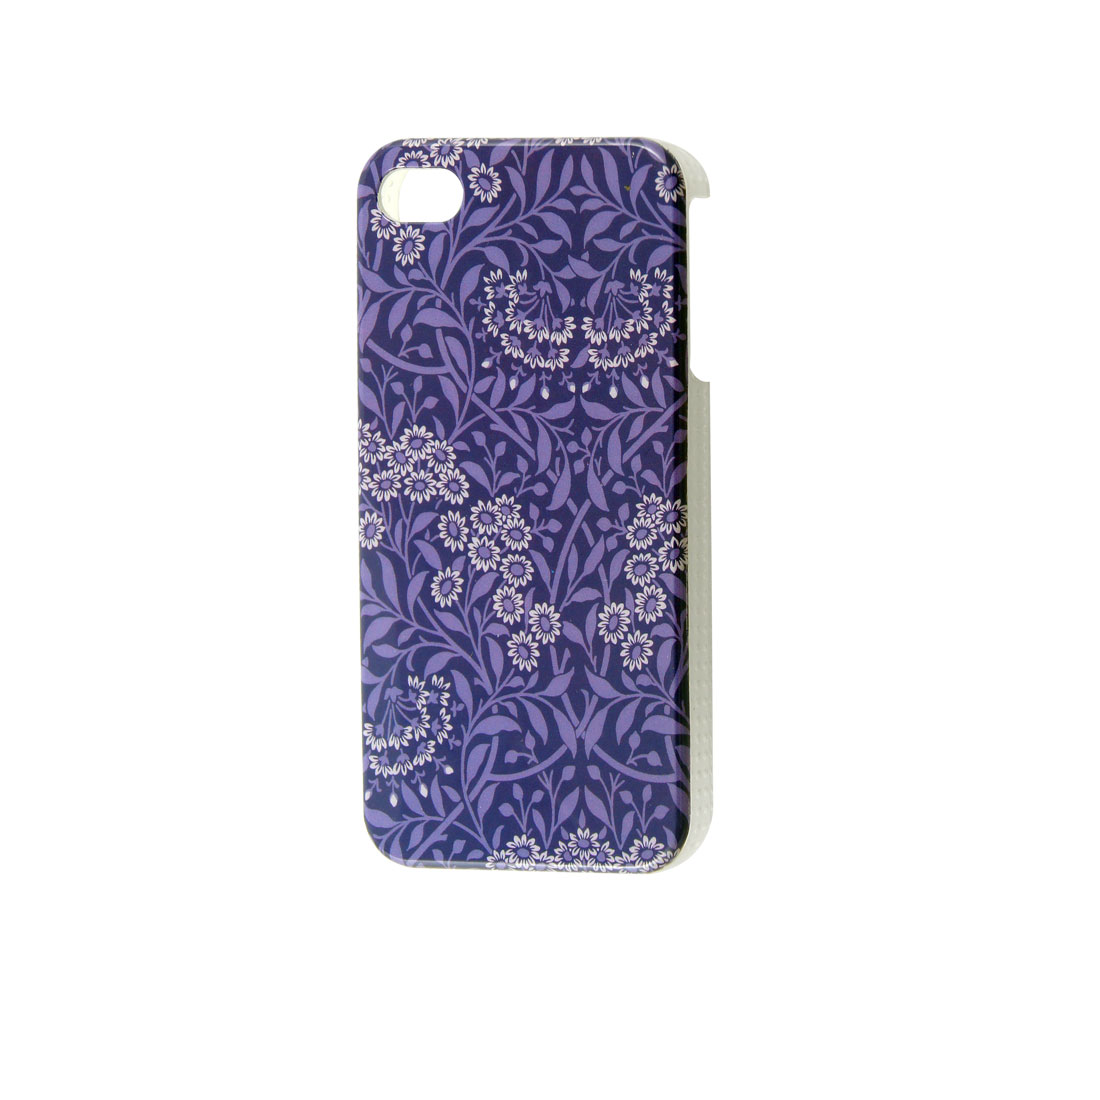 Blossom Print Indigo Blue IMD Plastic Back Cover Shell for iPhone 4 4GS